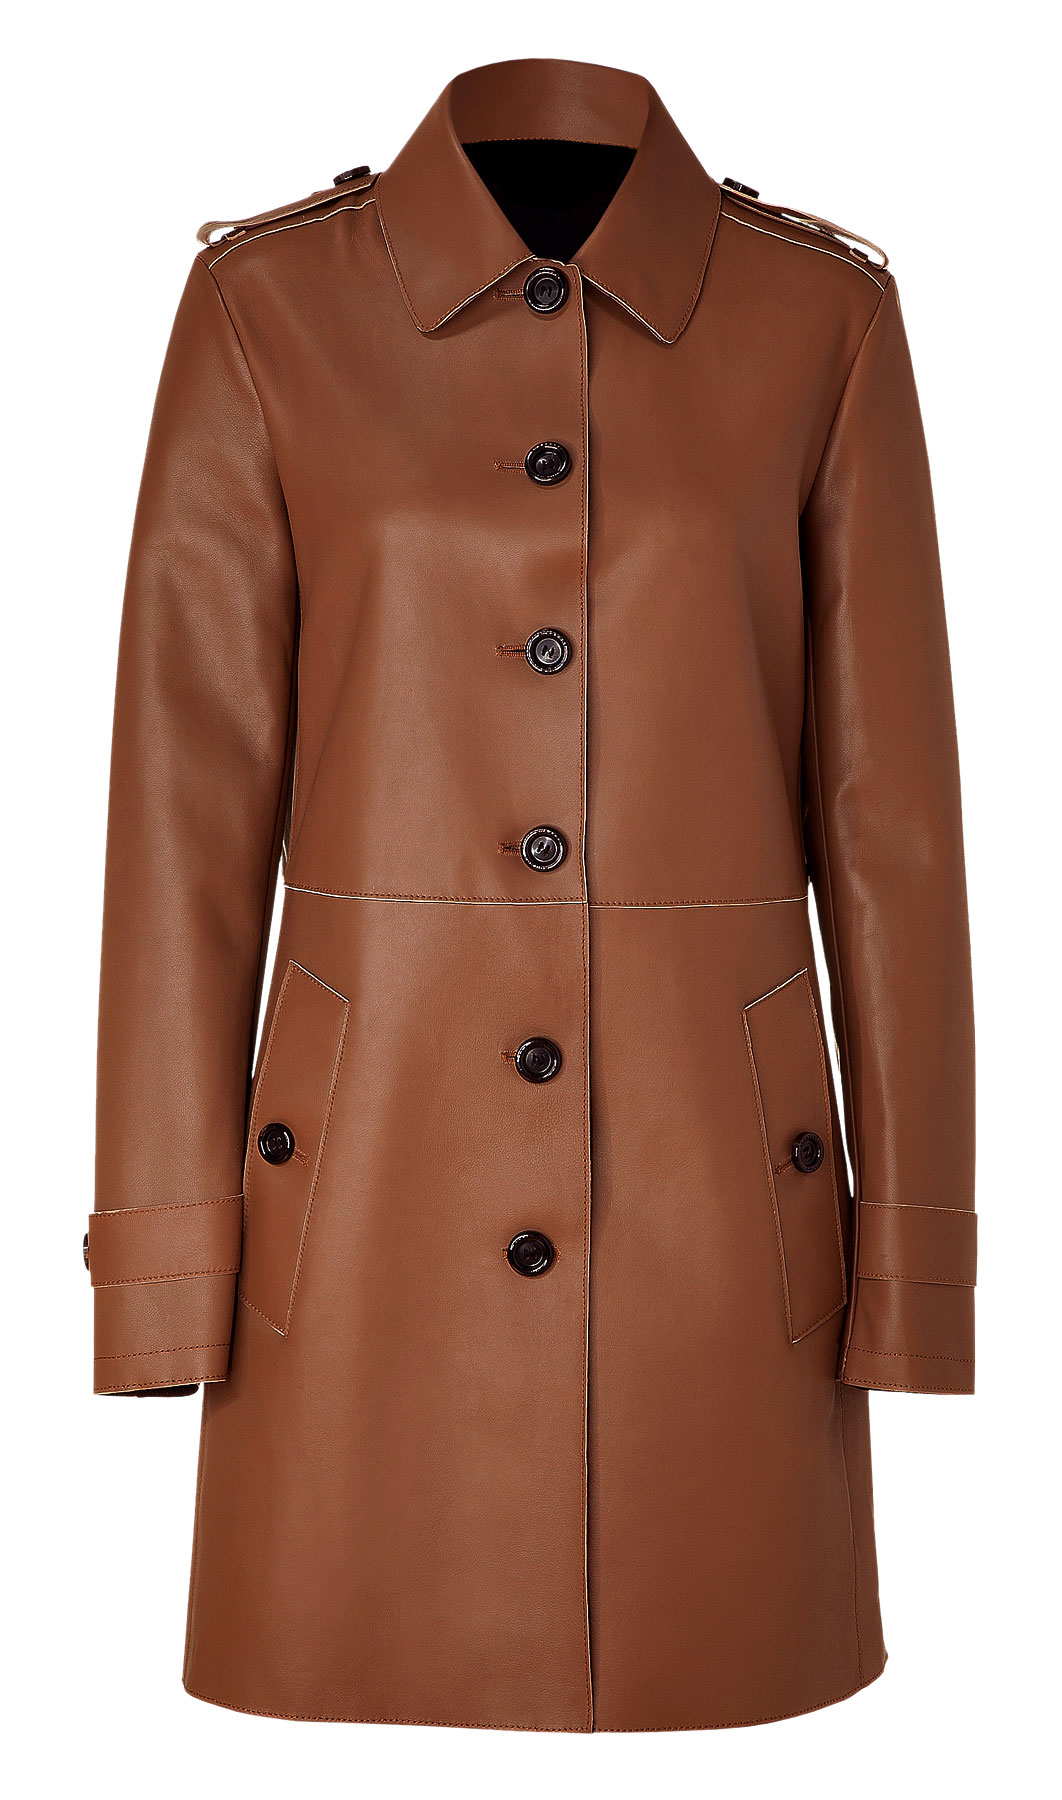 Buy formal push-button leather coat for women